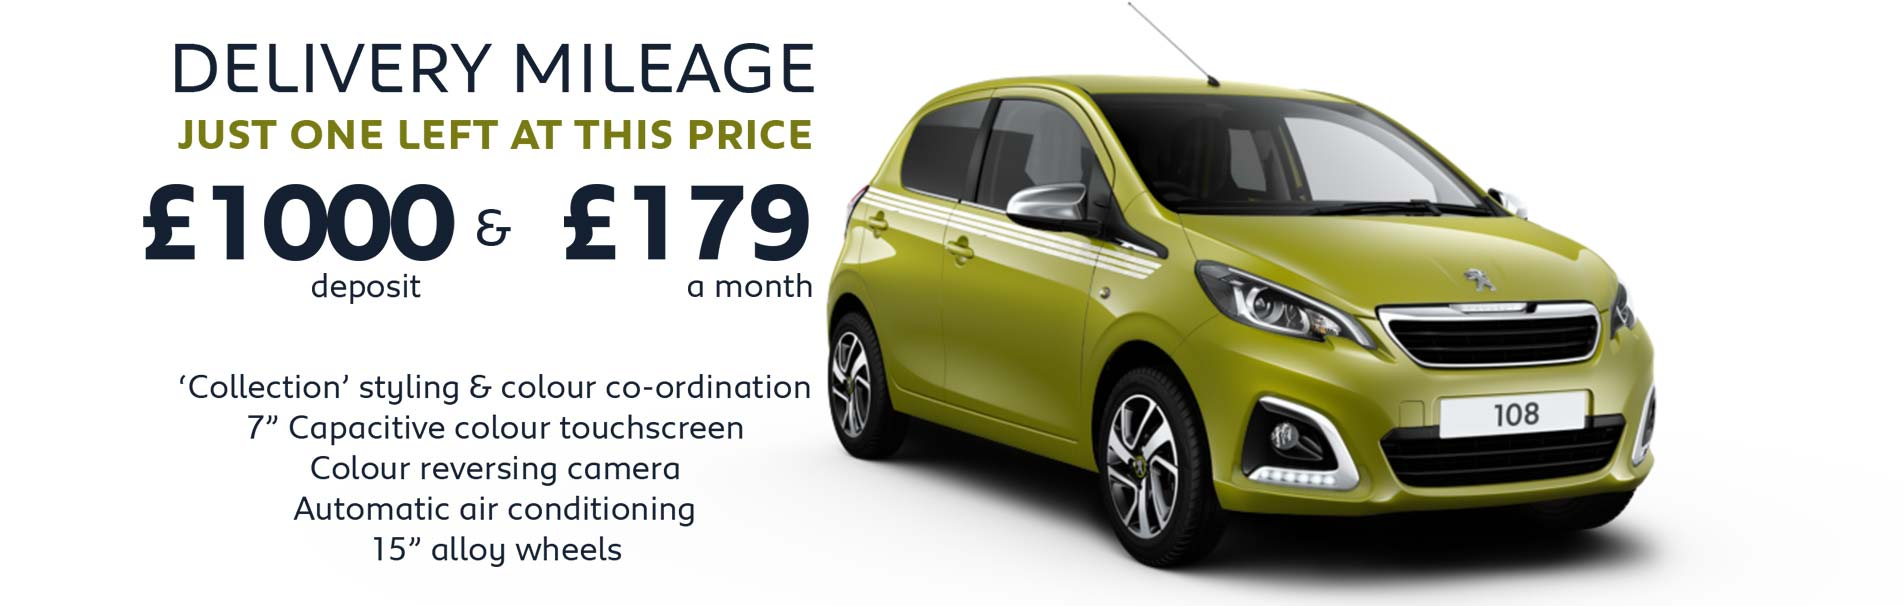 delivery-mileage-peugeot-108-collection-green-fizz-sli